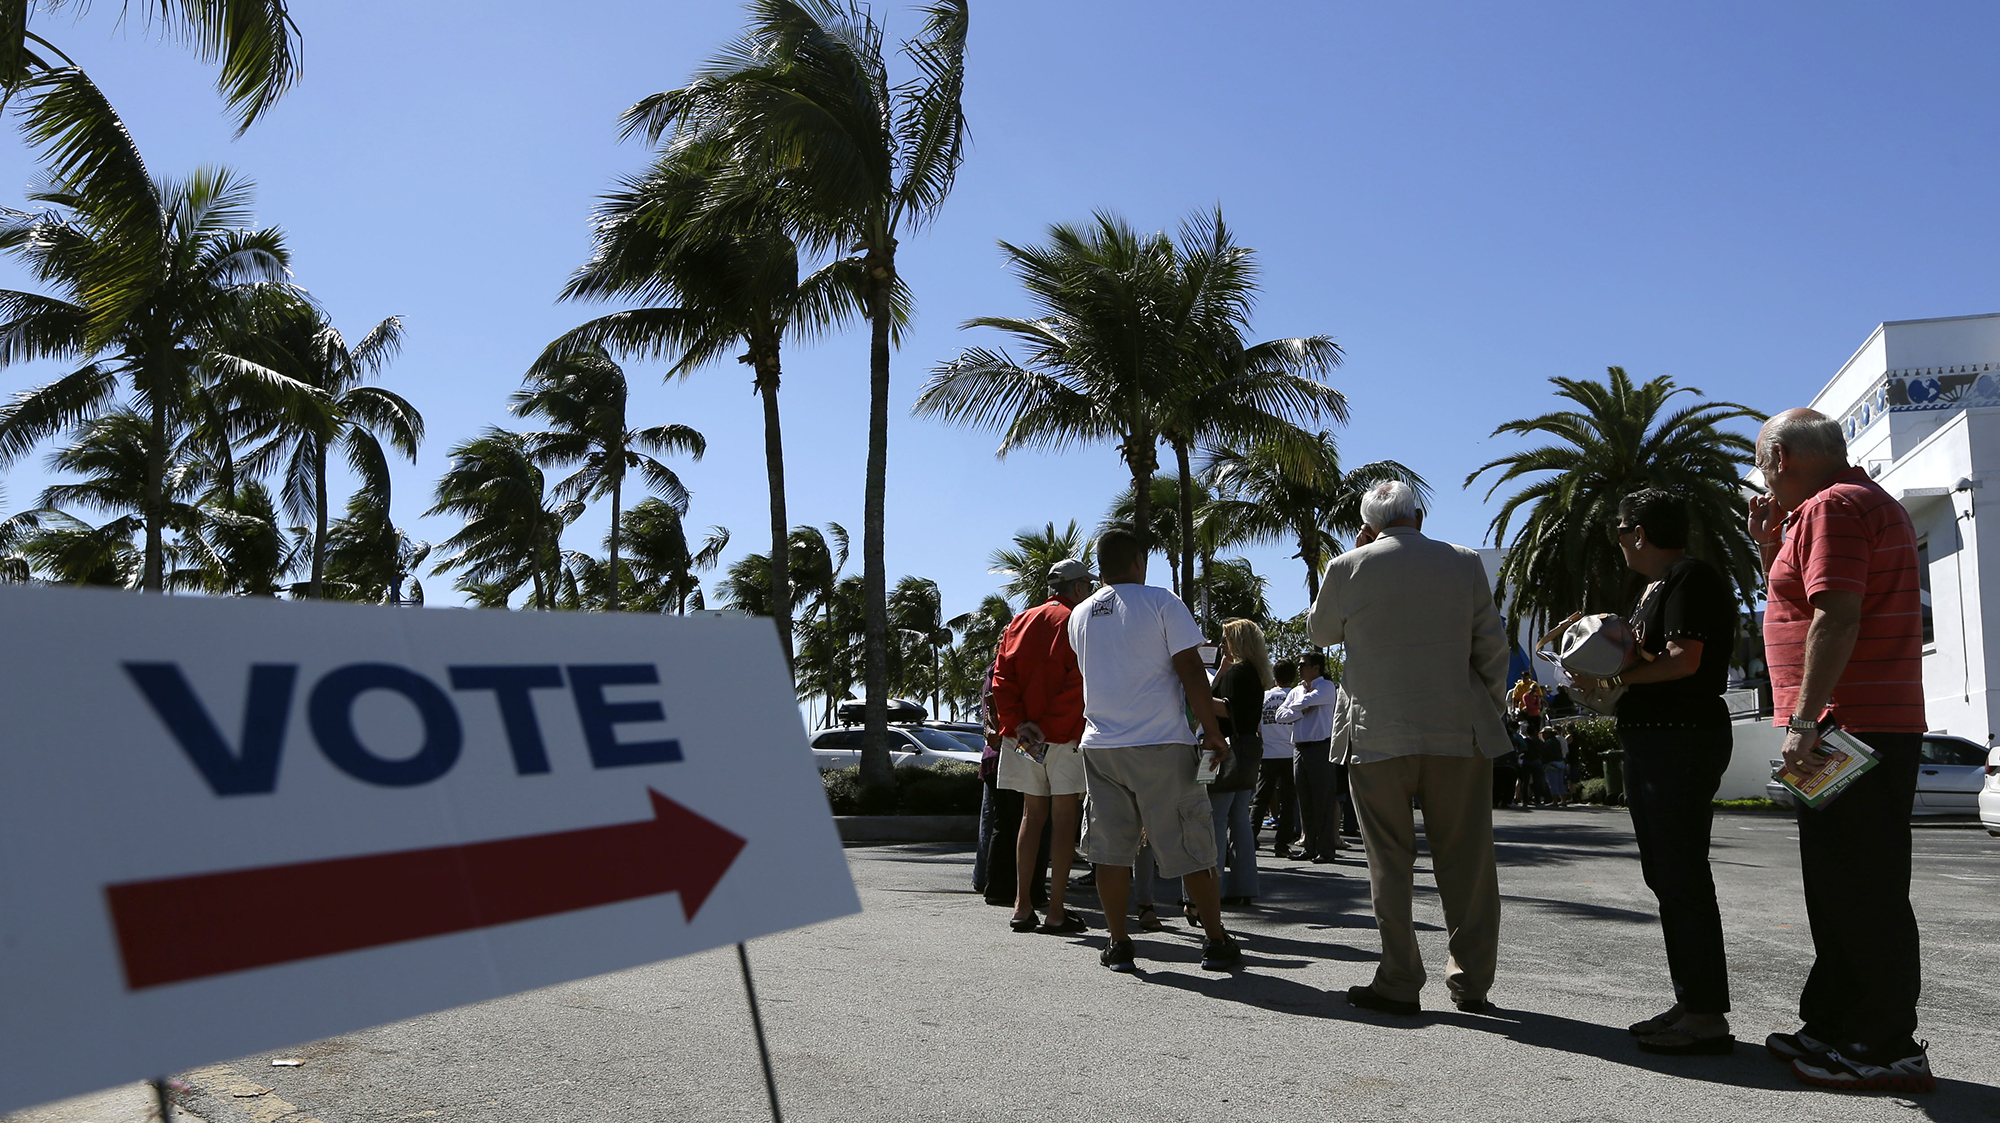 Federal judge knocks down Florida's voting ban for ex-felons